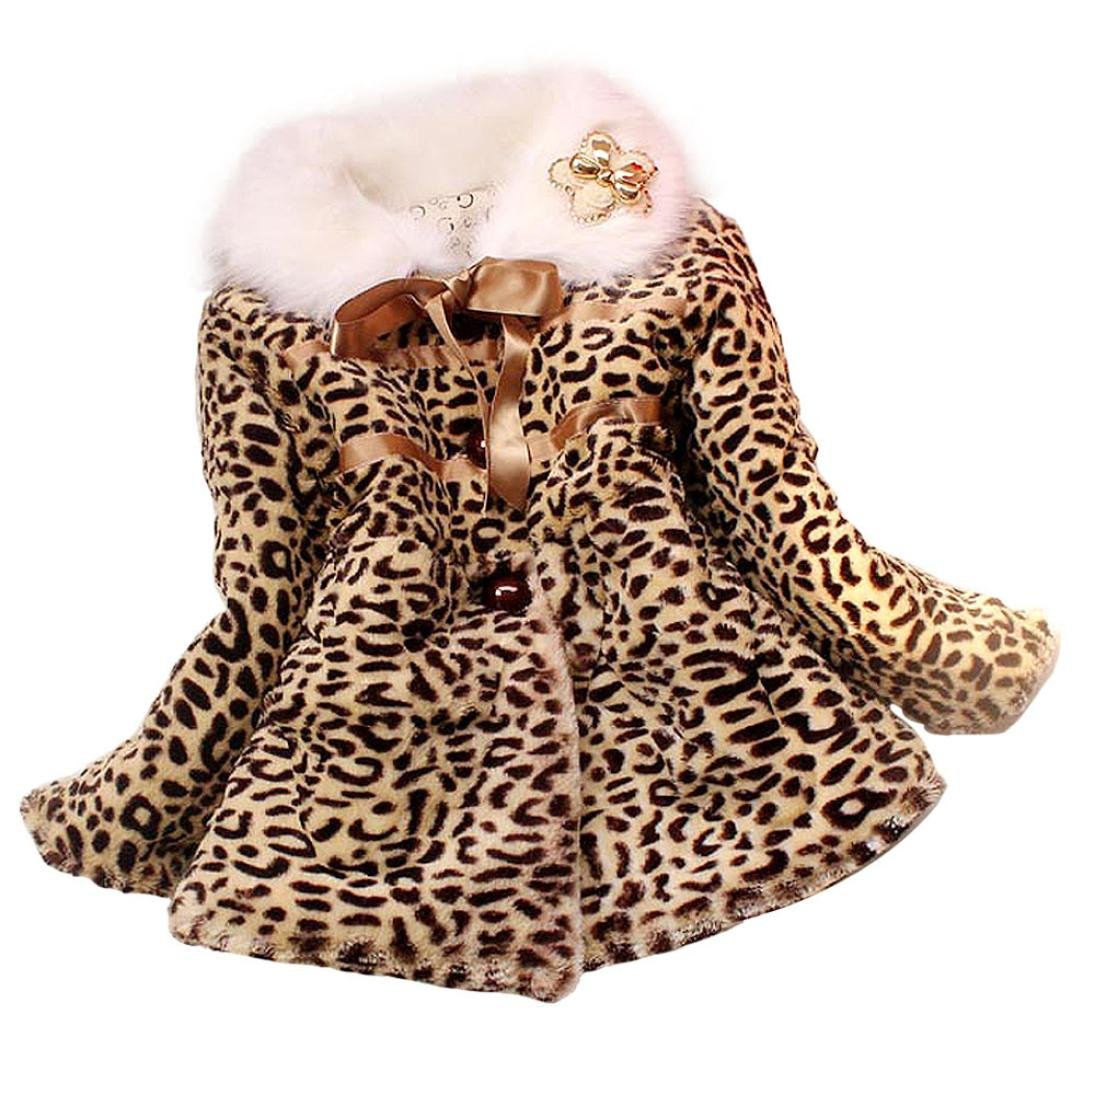 Internet Girls Princess Faux Fur Leopard Coat Girls Warm Jacket Snowsuit Clothing for 2-5 Years